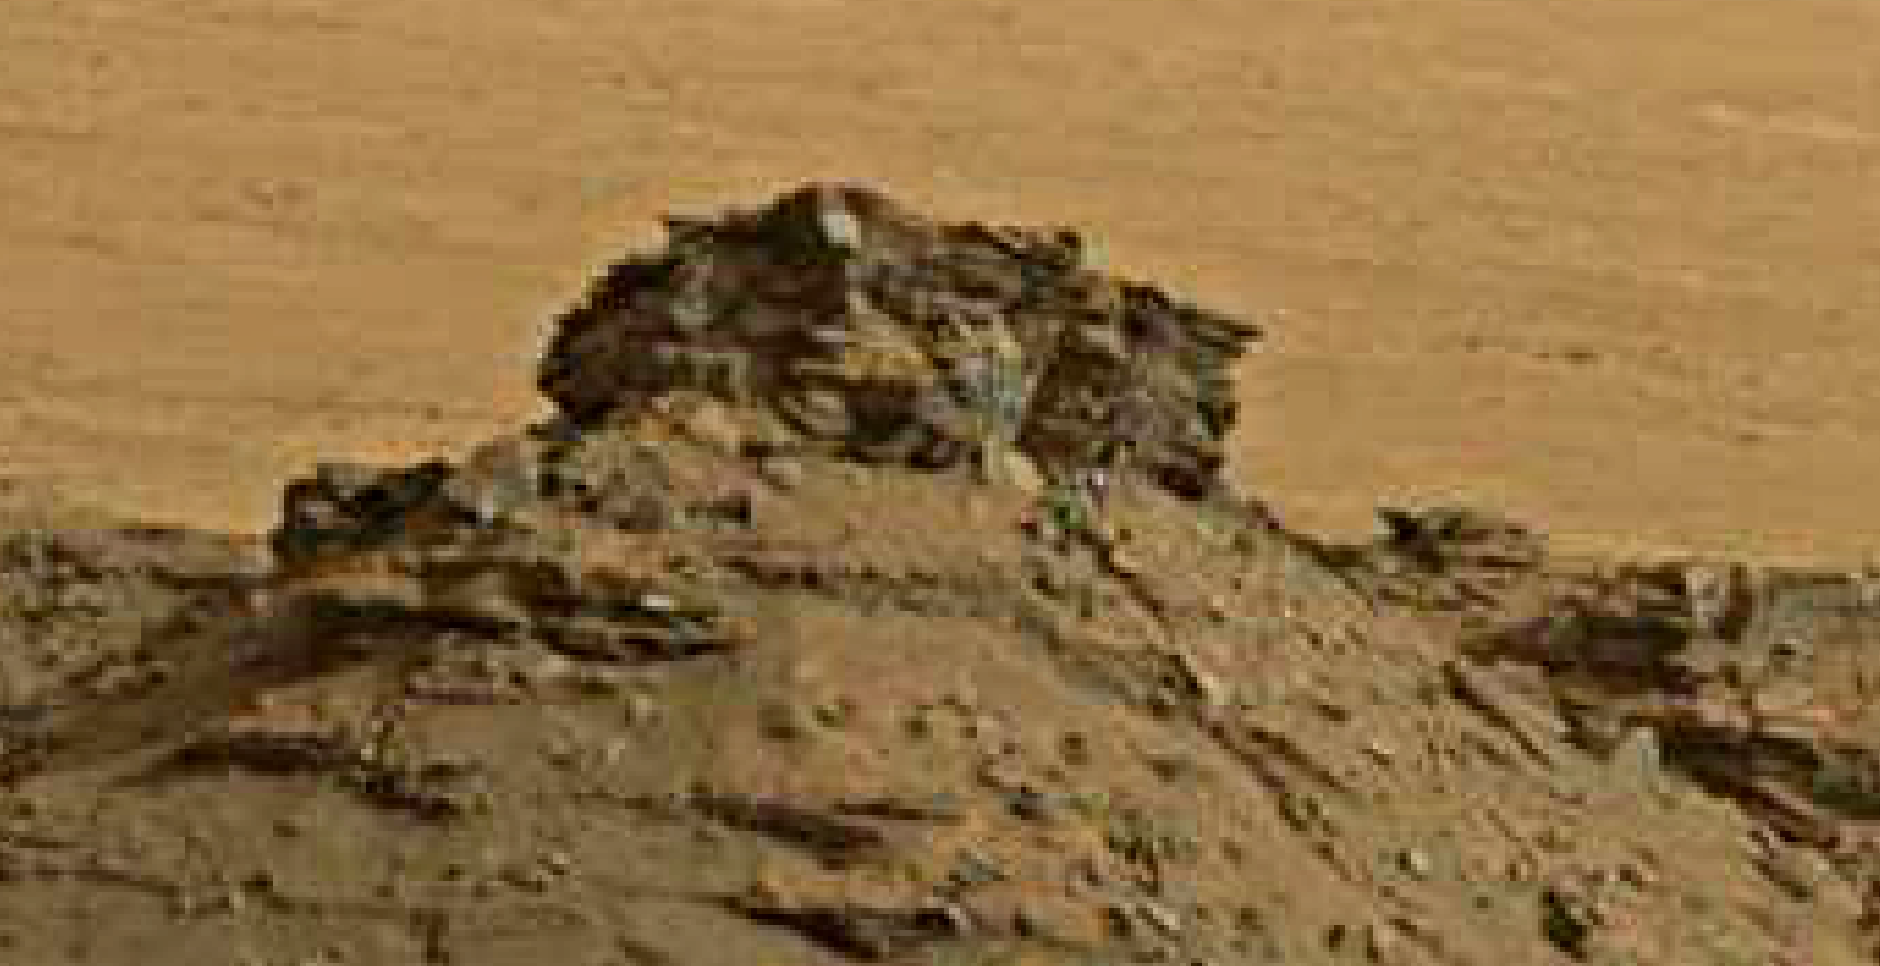 mars sol 1447 anomaly artifacts 6 -bird-plane-butte - was life on mars